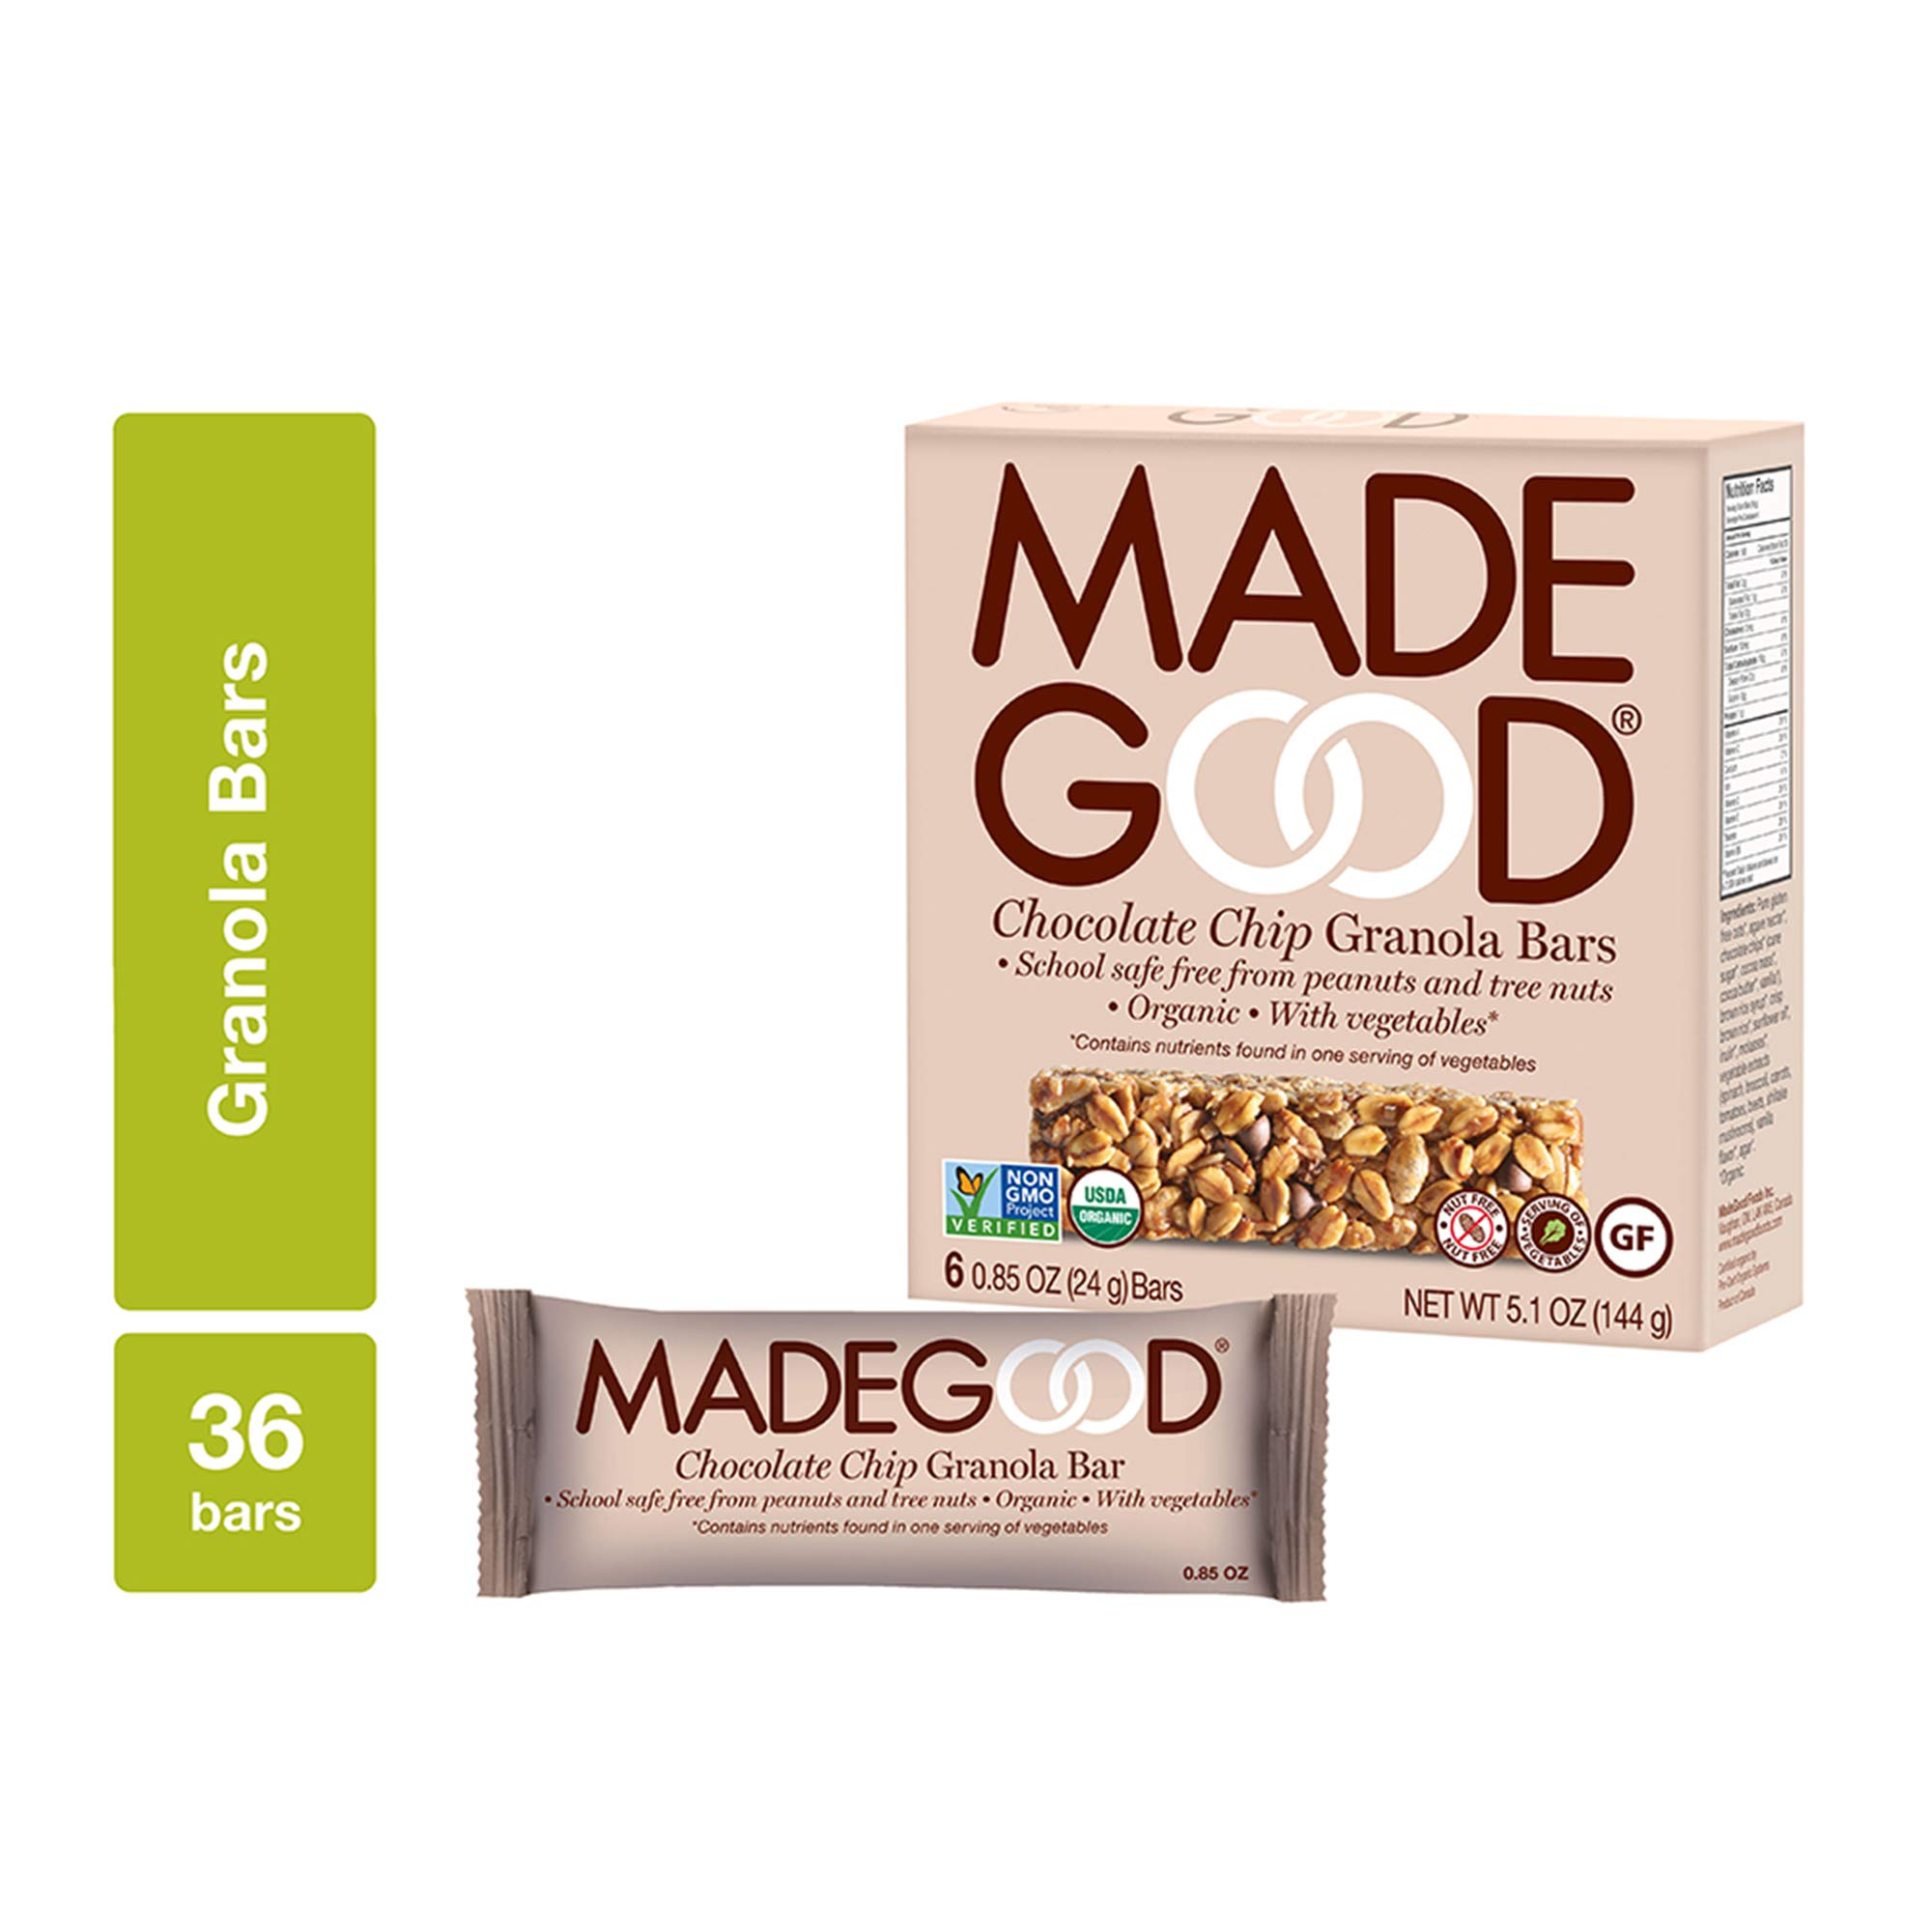 MadeGood Chocolate Chip Granola Bars, 6 Pack (36 bars); Gluten-Free Oats and Delicious Chocolate Chips; Contains Nutrients of 1 Serving of Vegetables; Allergy-Friendly, Full of Chewy, Tasty Goodness